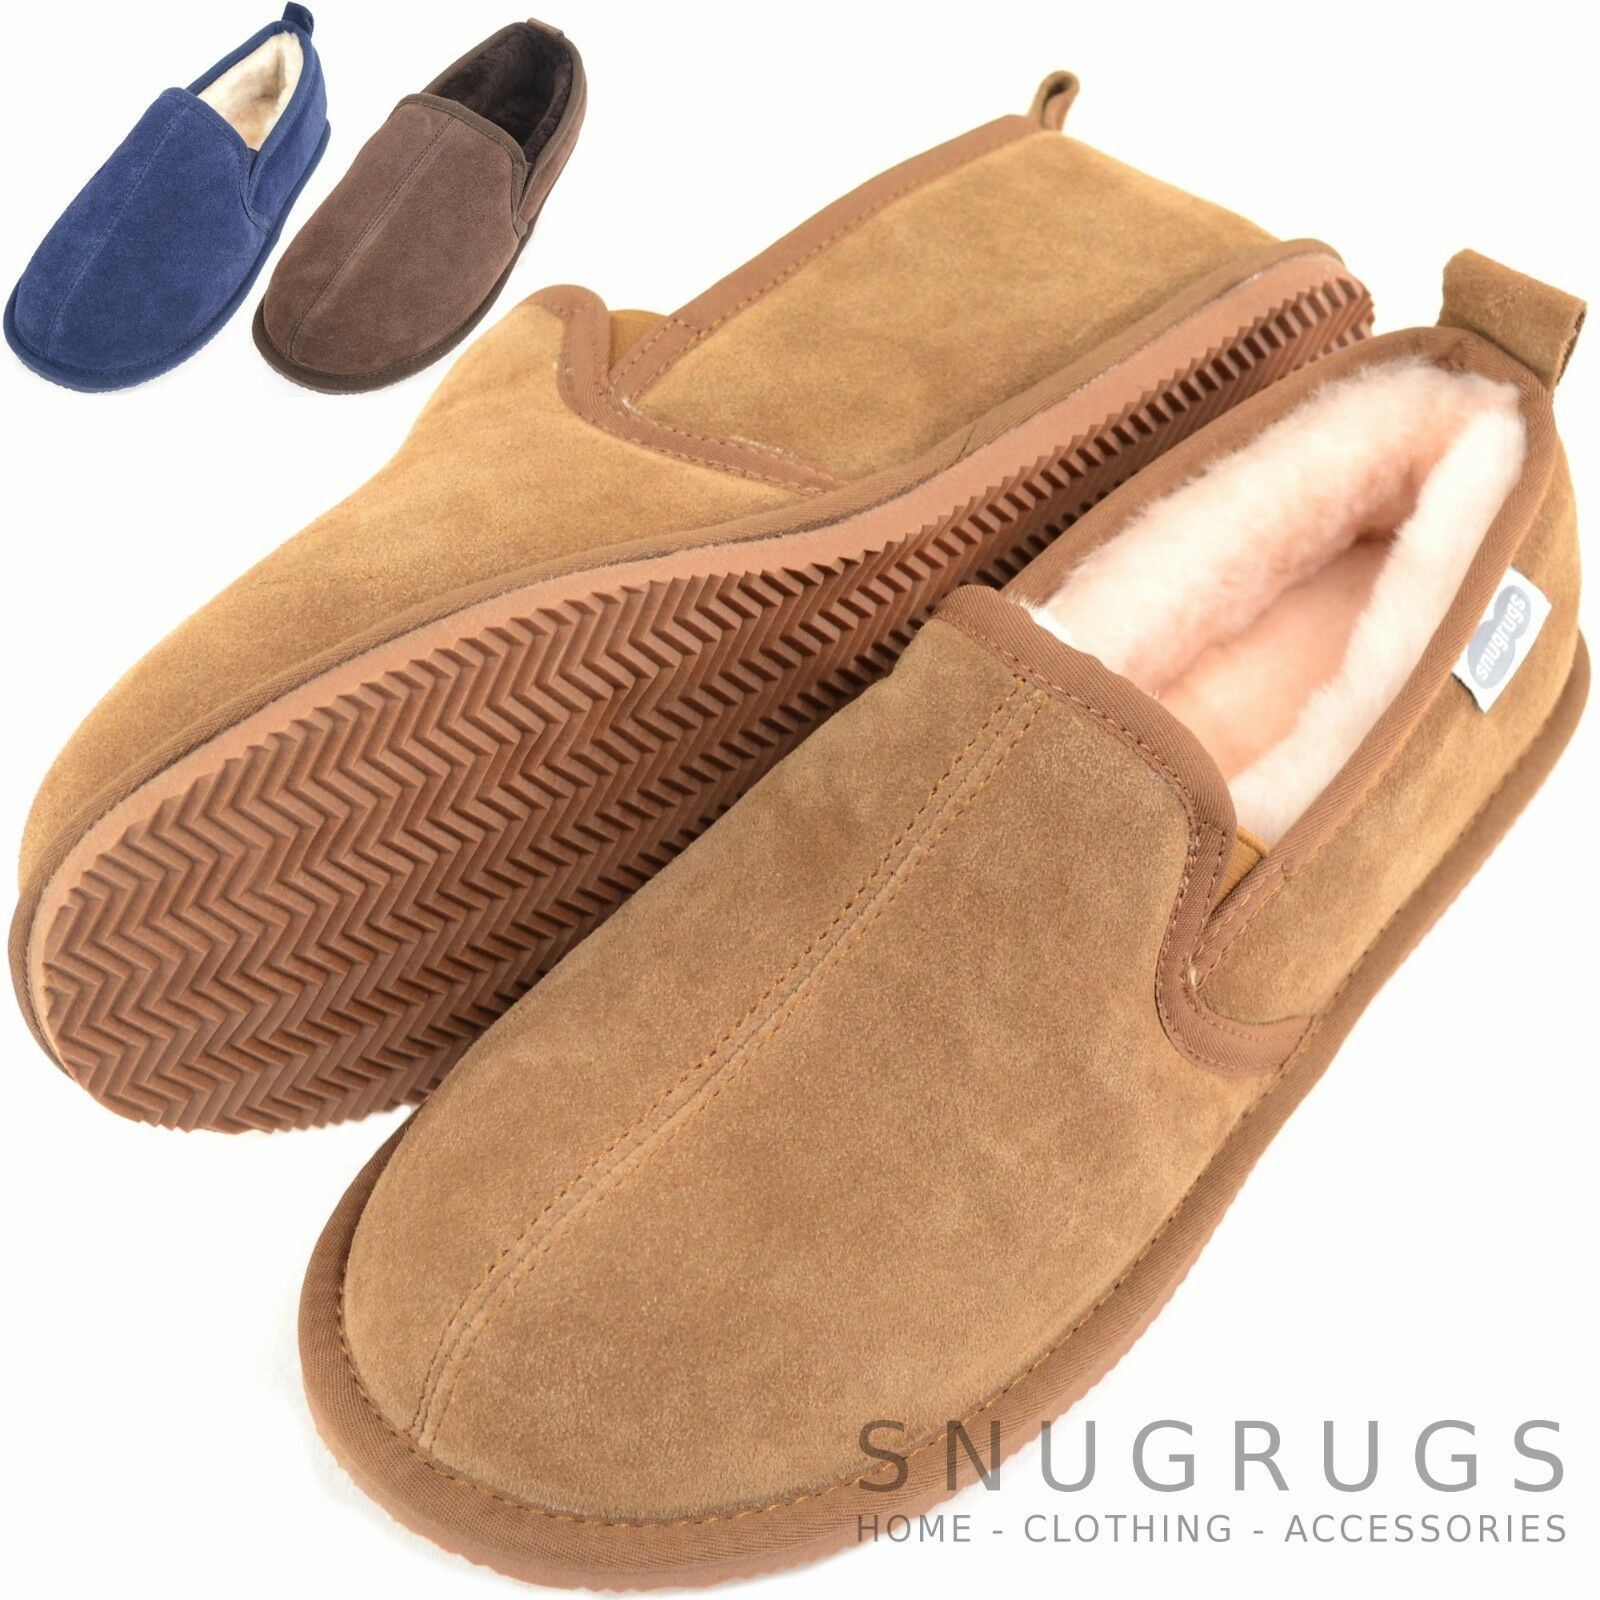 SNUGRUGS Mens   Gents Luxury Full Sheepskin Slipper Boots with Rubber Sole